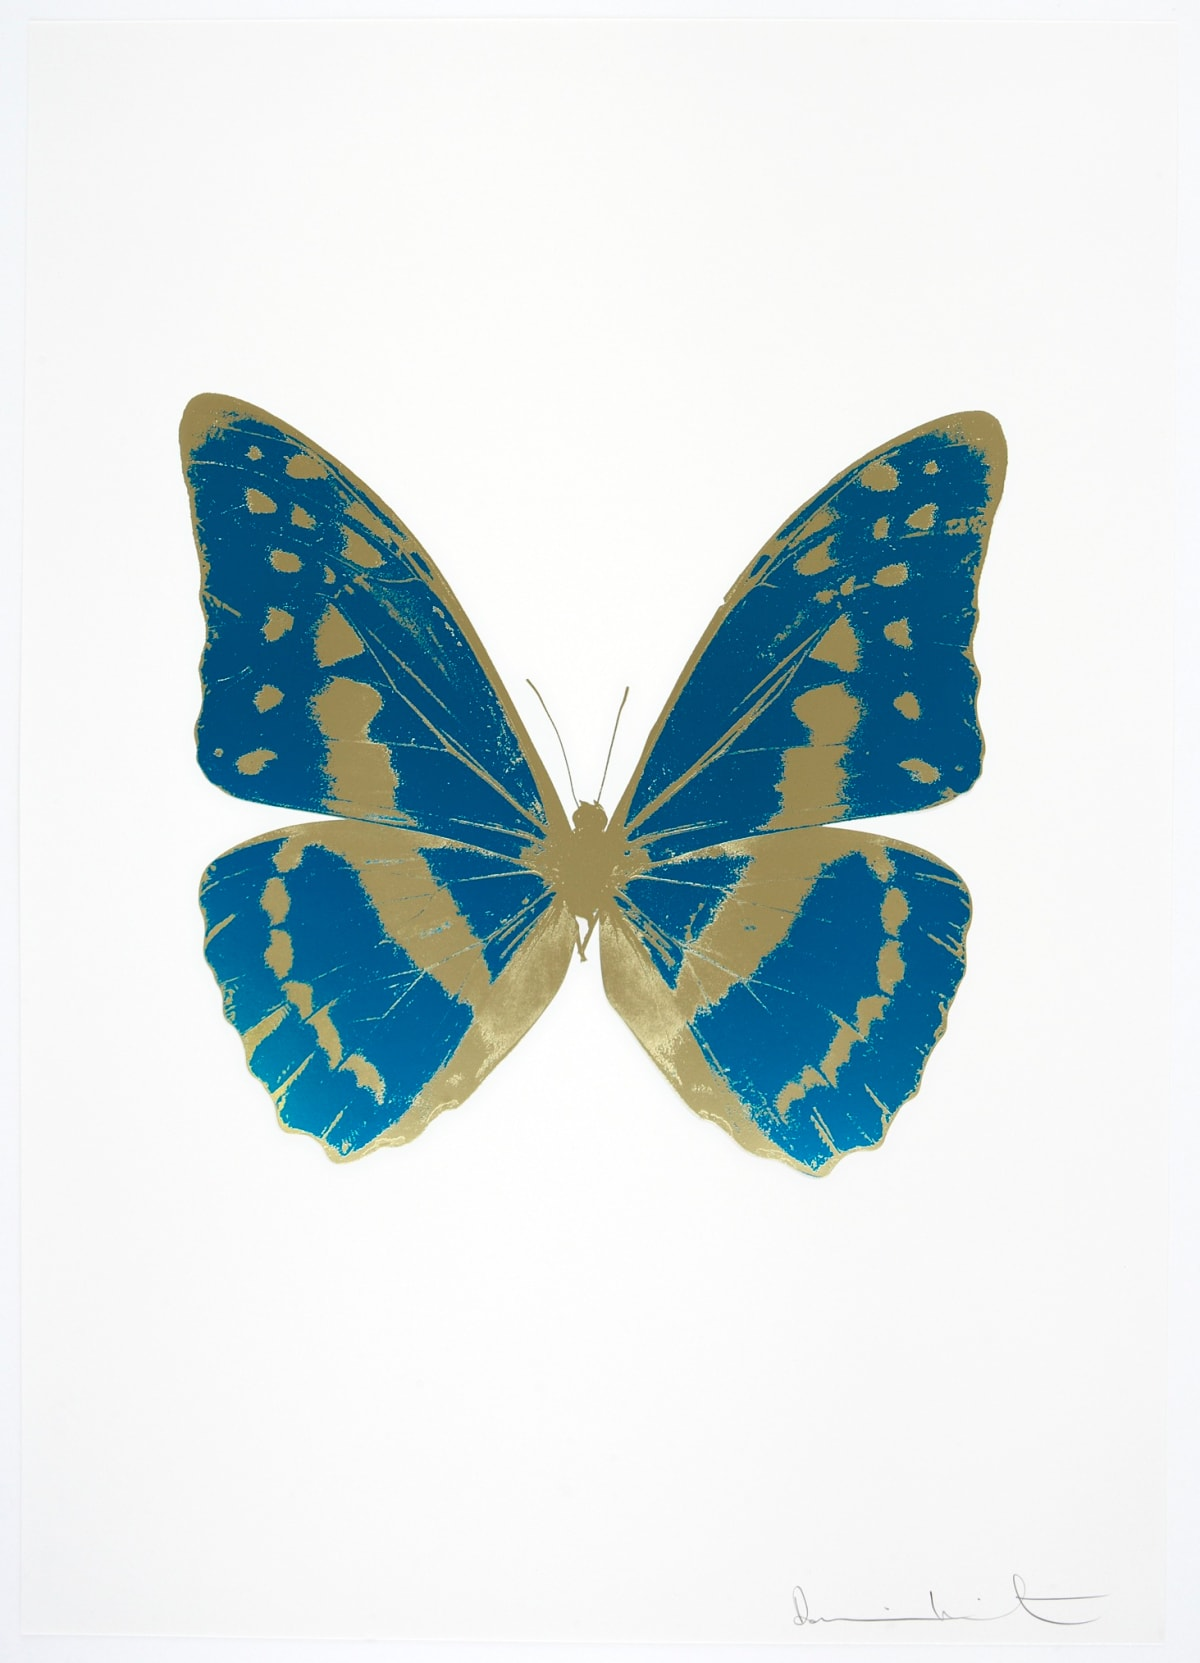 Damien Hirst The Souls III - Turquoise/Cool Gold/Cool Gold, 2010 2 colour foil block on 300gsm Arches 88 archival paper. Signed and numbered. Published by Paul Stolper and Other Criteria 72 x 51cm OC7965 / 660-68 Edition of 15